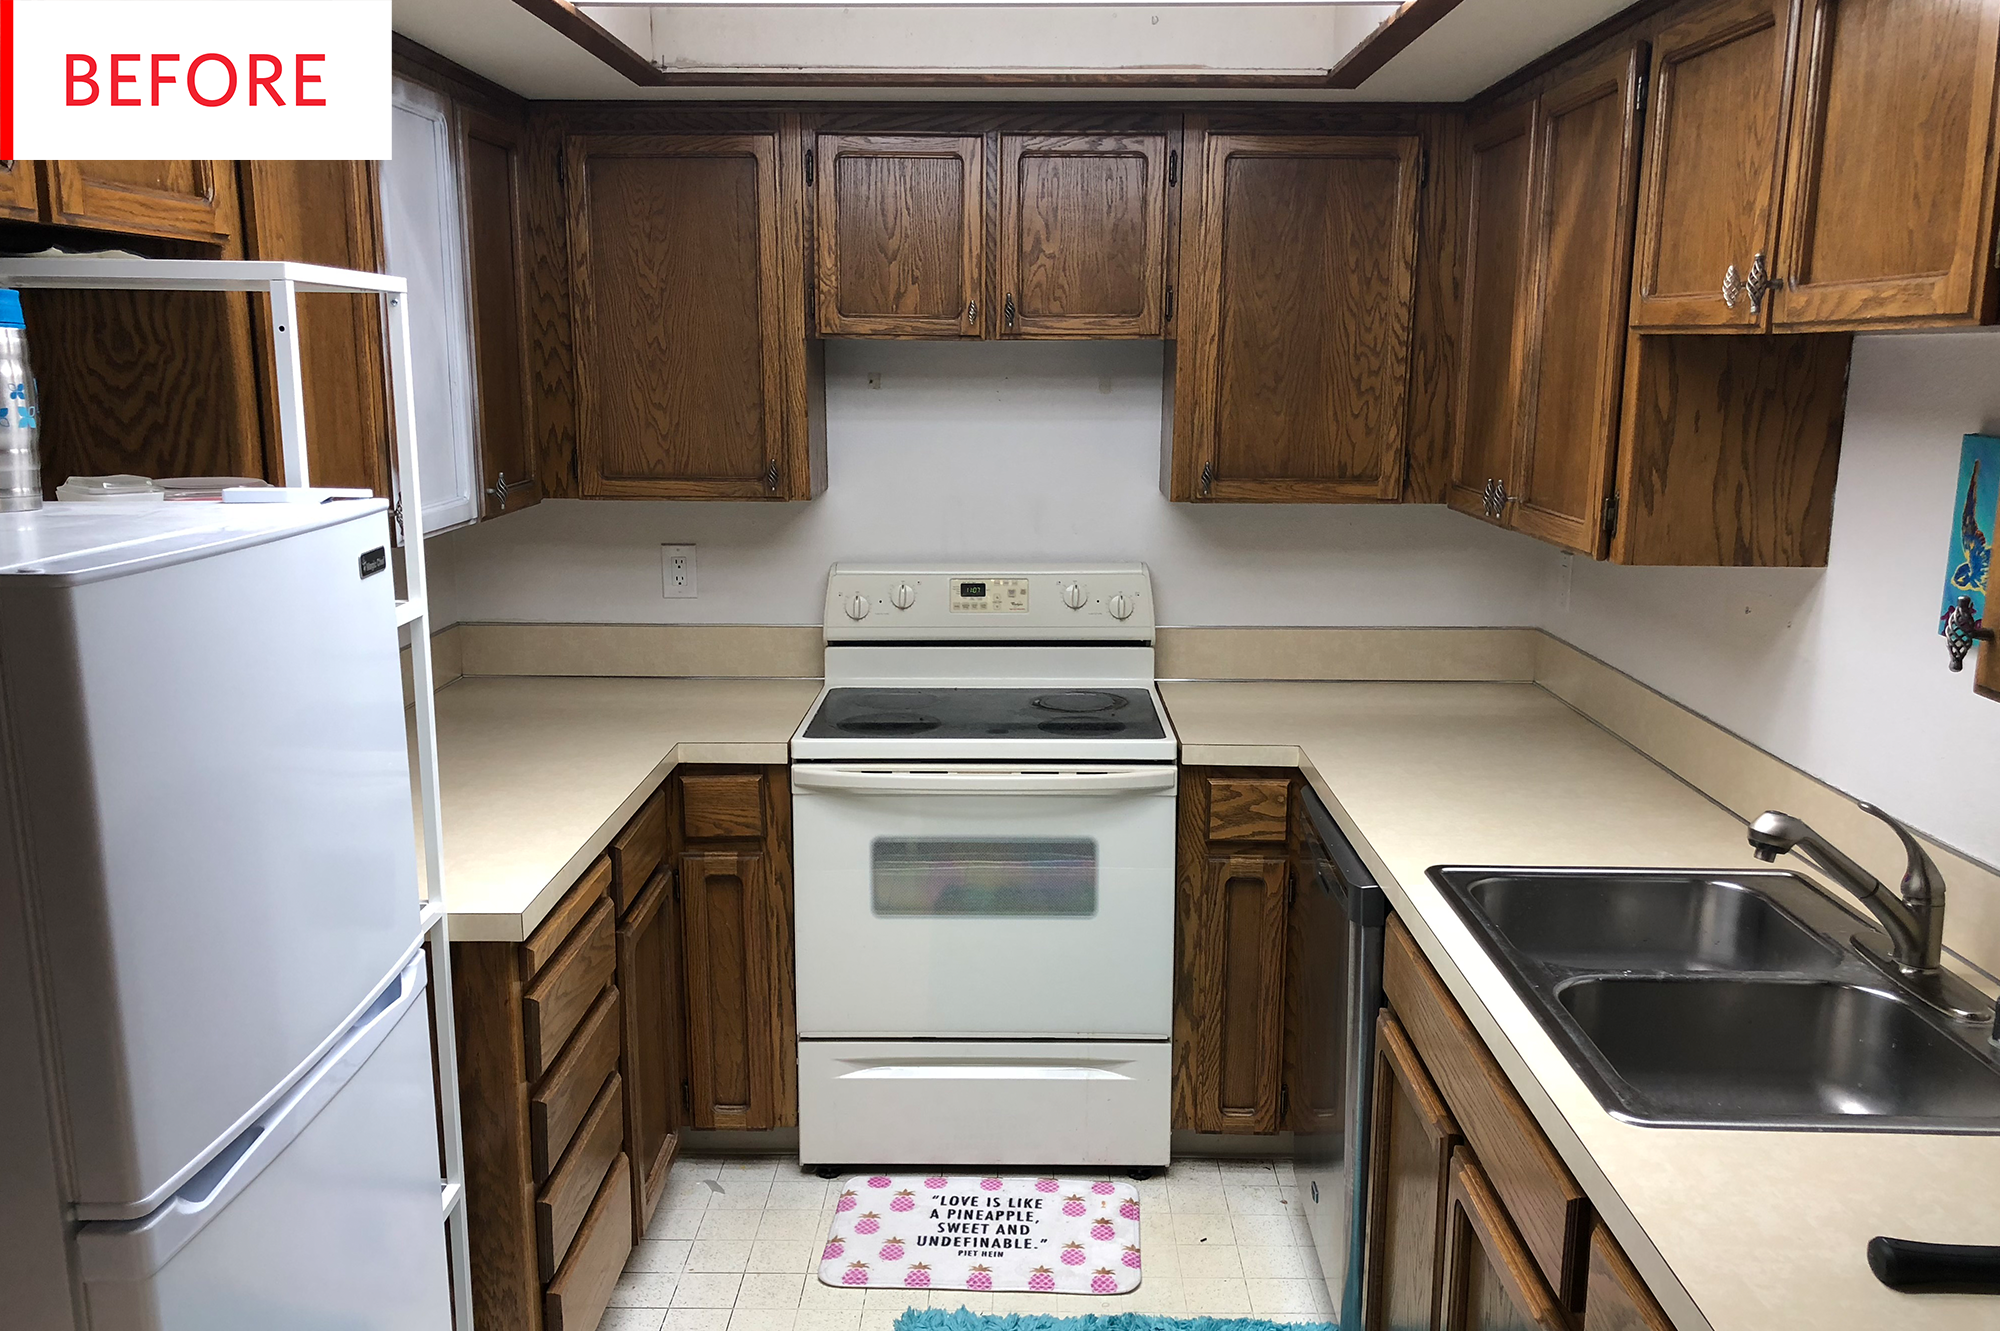 Budget DIY Kitchen Remodel - Before